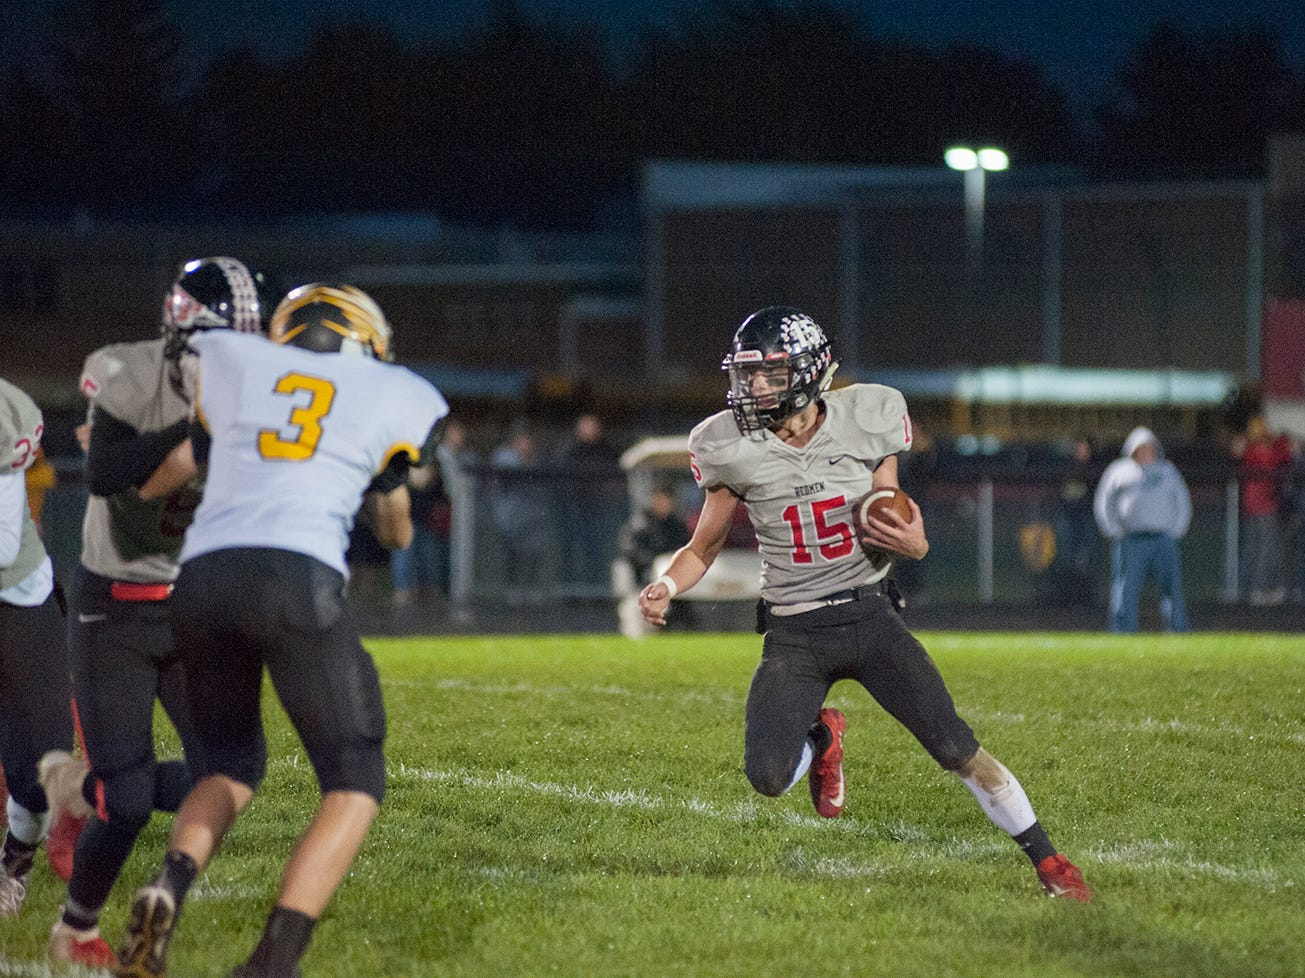 Bucyrus' Hastin Zier runs with the ball.